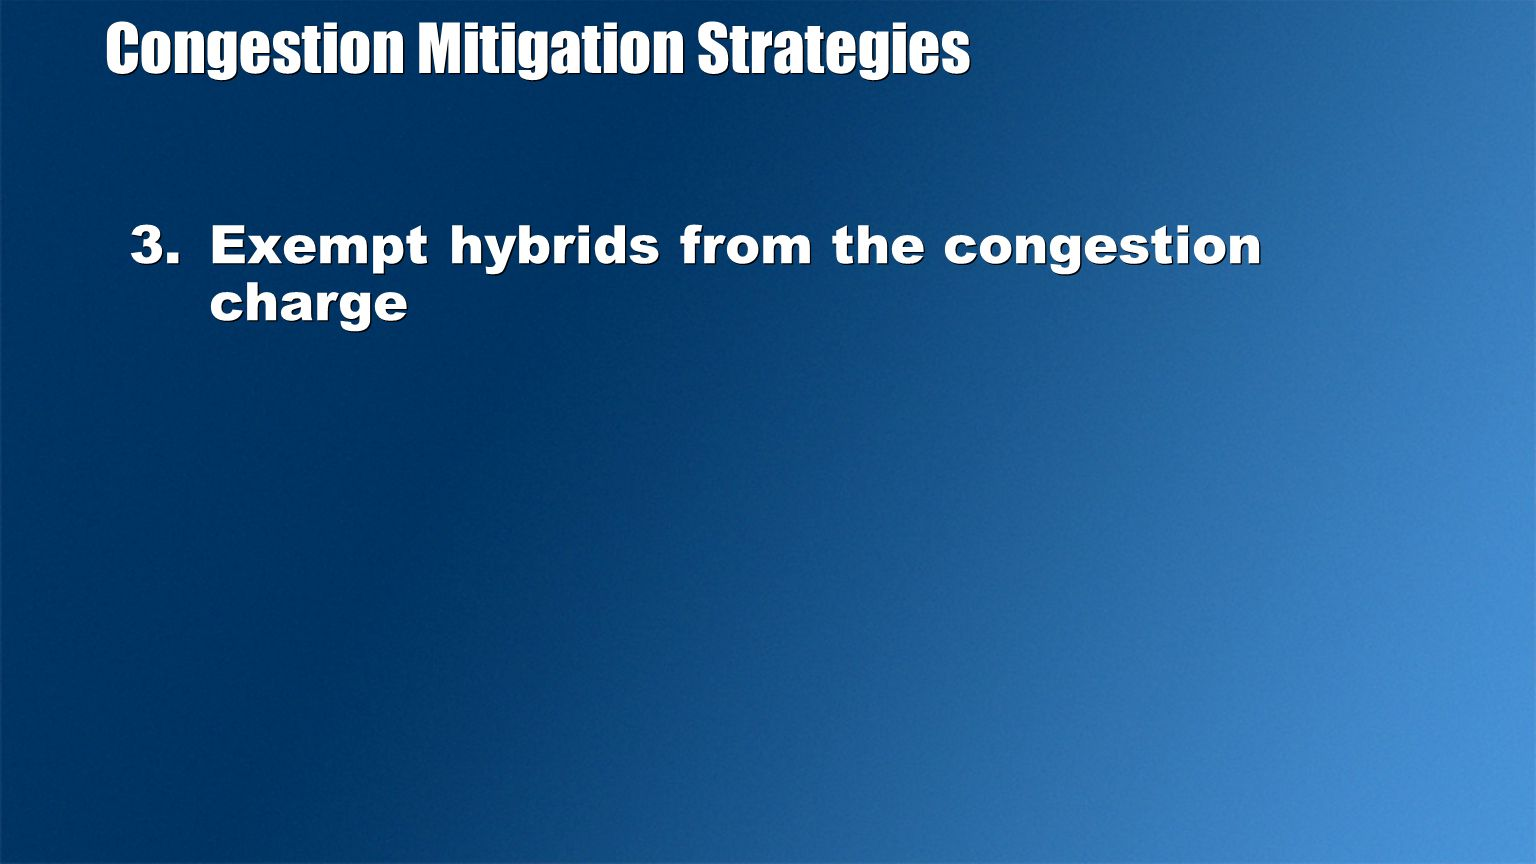 Congestion Mitigation Strategies 3.Exempt hybrids from the congestion charge